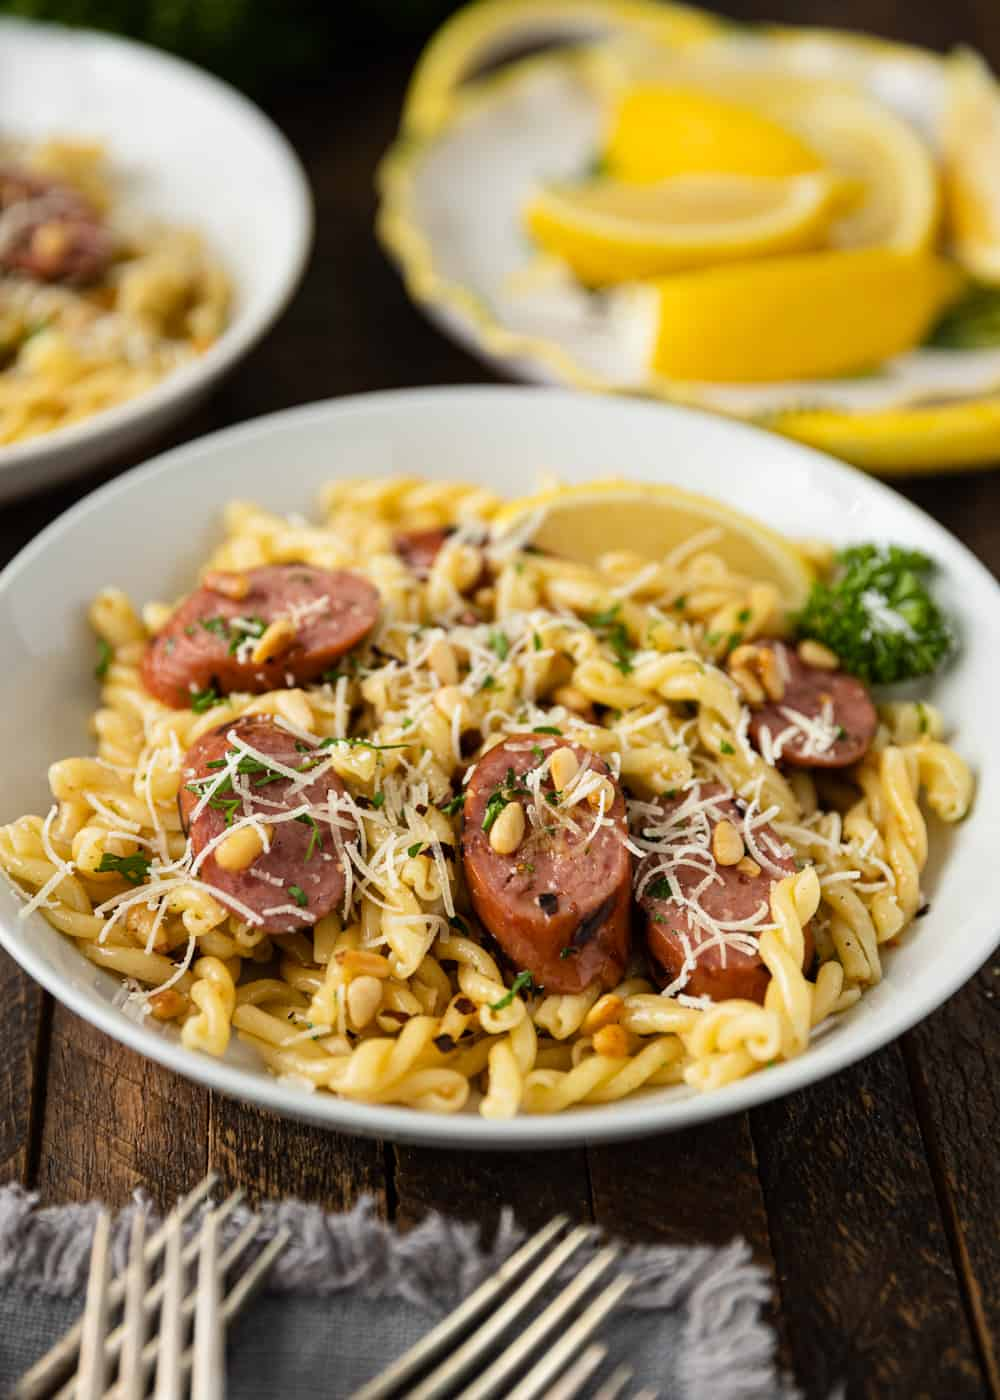 plate of Smoked Sausage and Browned Butter Pasta with parmesan cheese on top